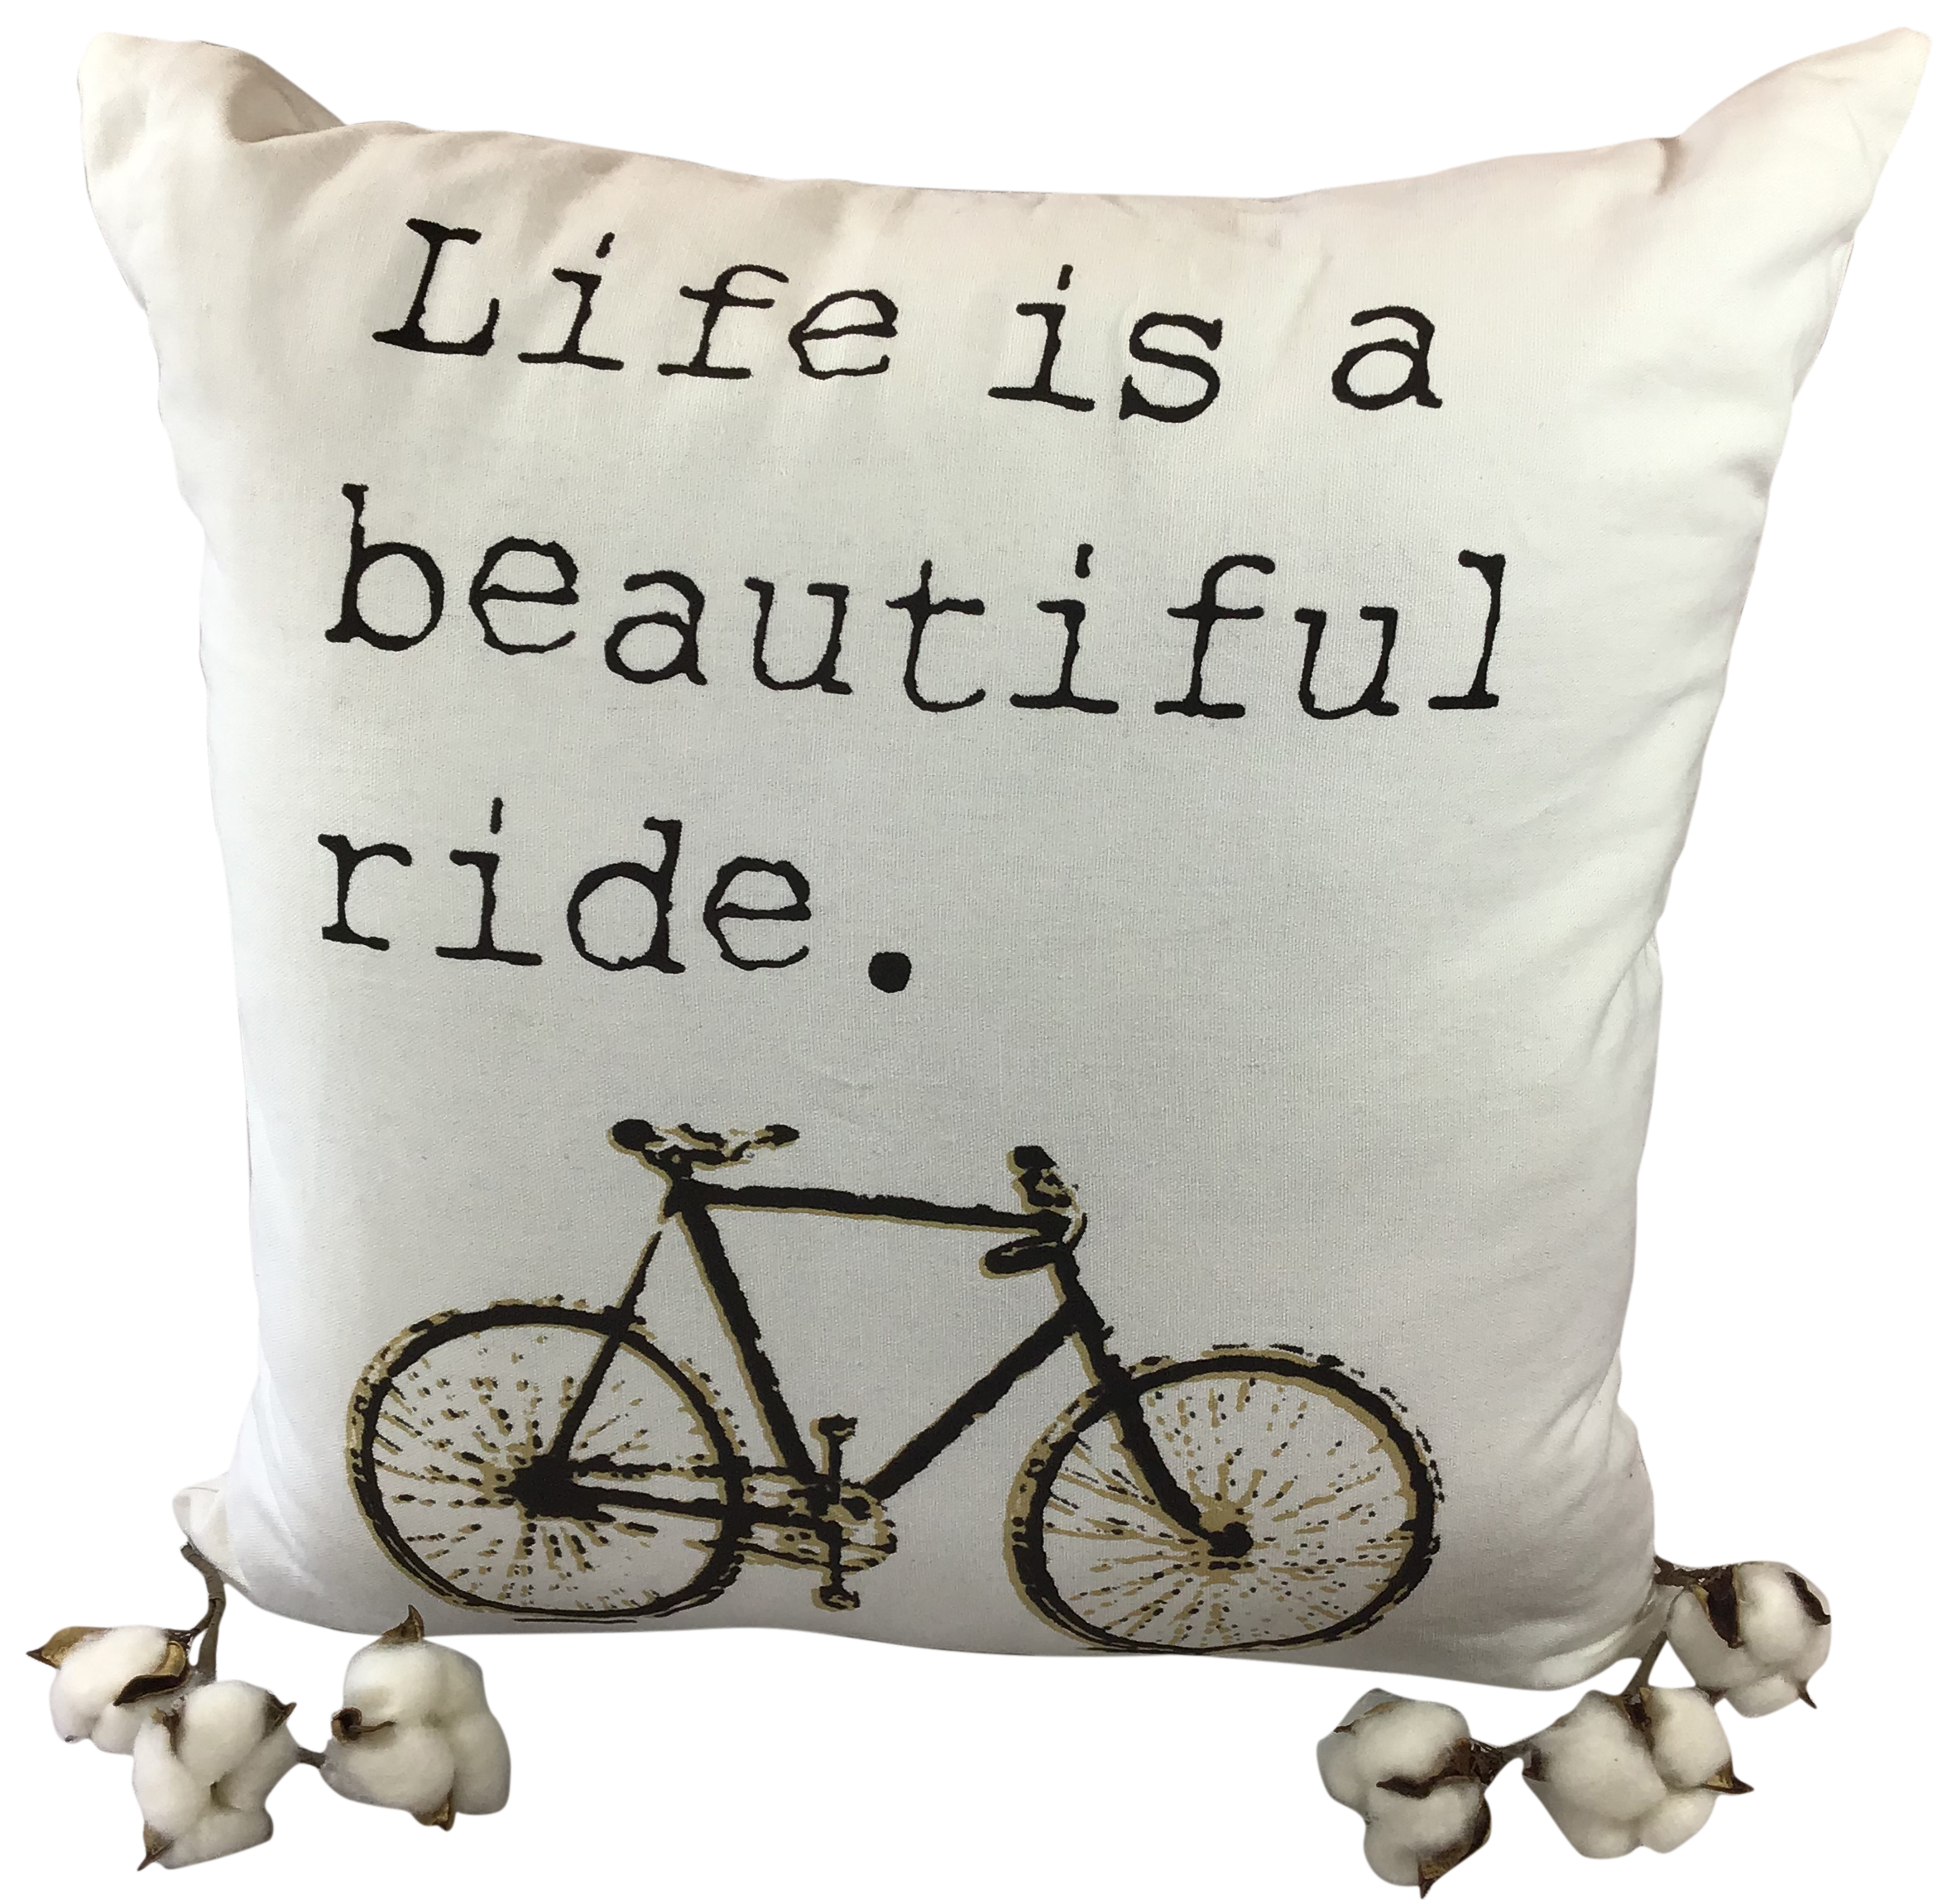 Montana's Heart Life Is A Beautiful Ride White Inspirational Cotton Pillow